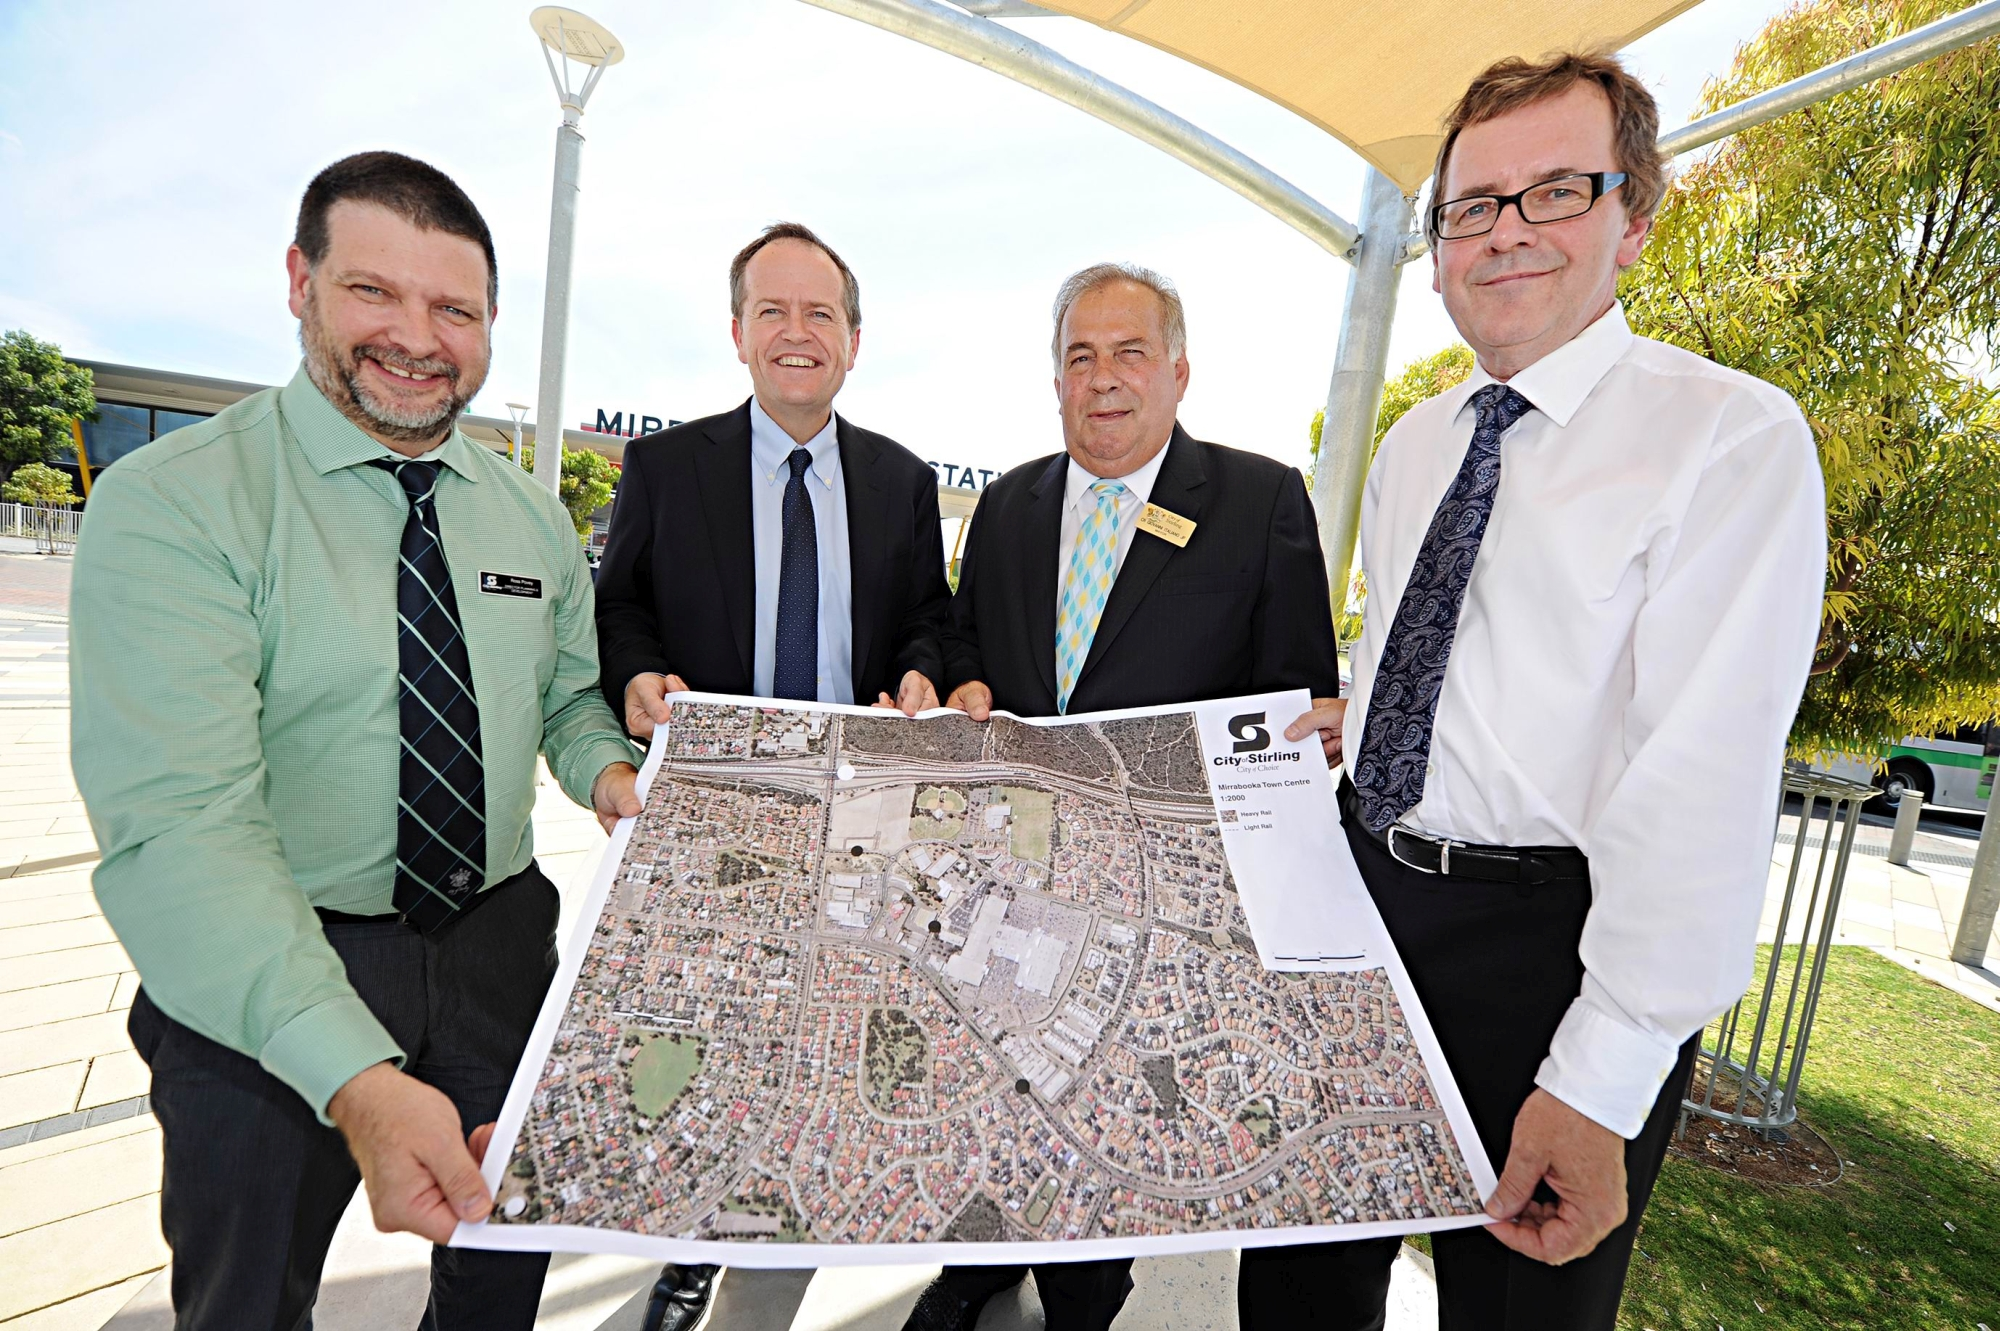 Labor leader Bill Shorten with City of Stirling planning and development director Ross Povey, Mayor Giovanni Italiano and chief executive Stuart Jardine. Picture: Marcus Whisson d416810